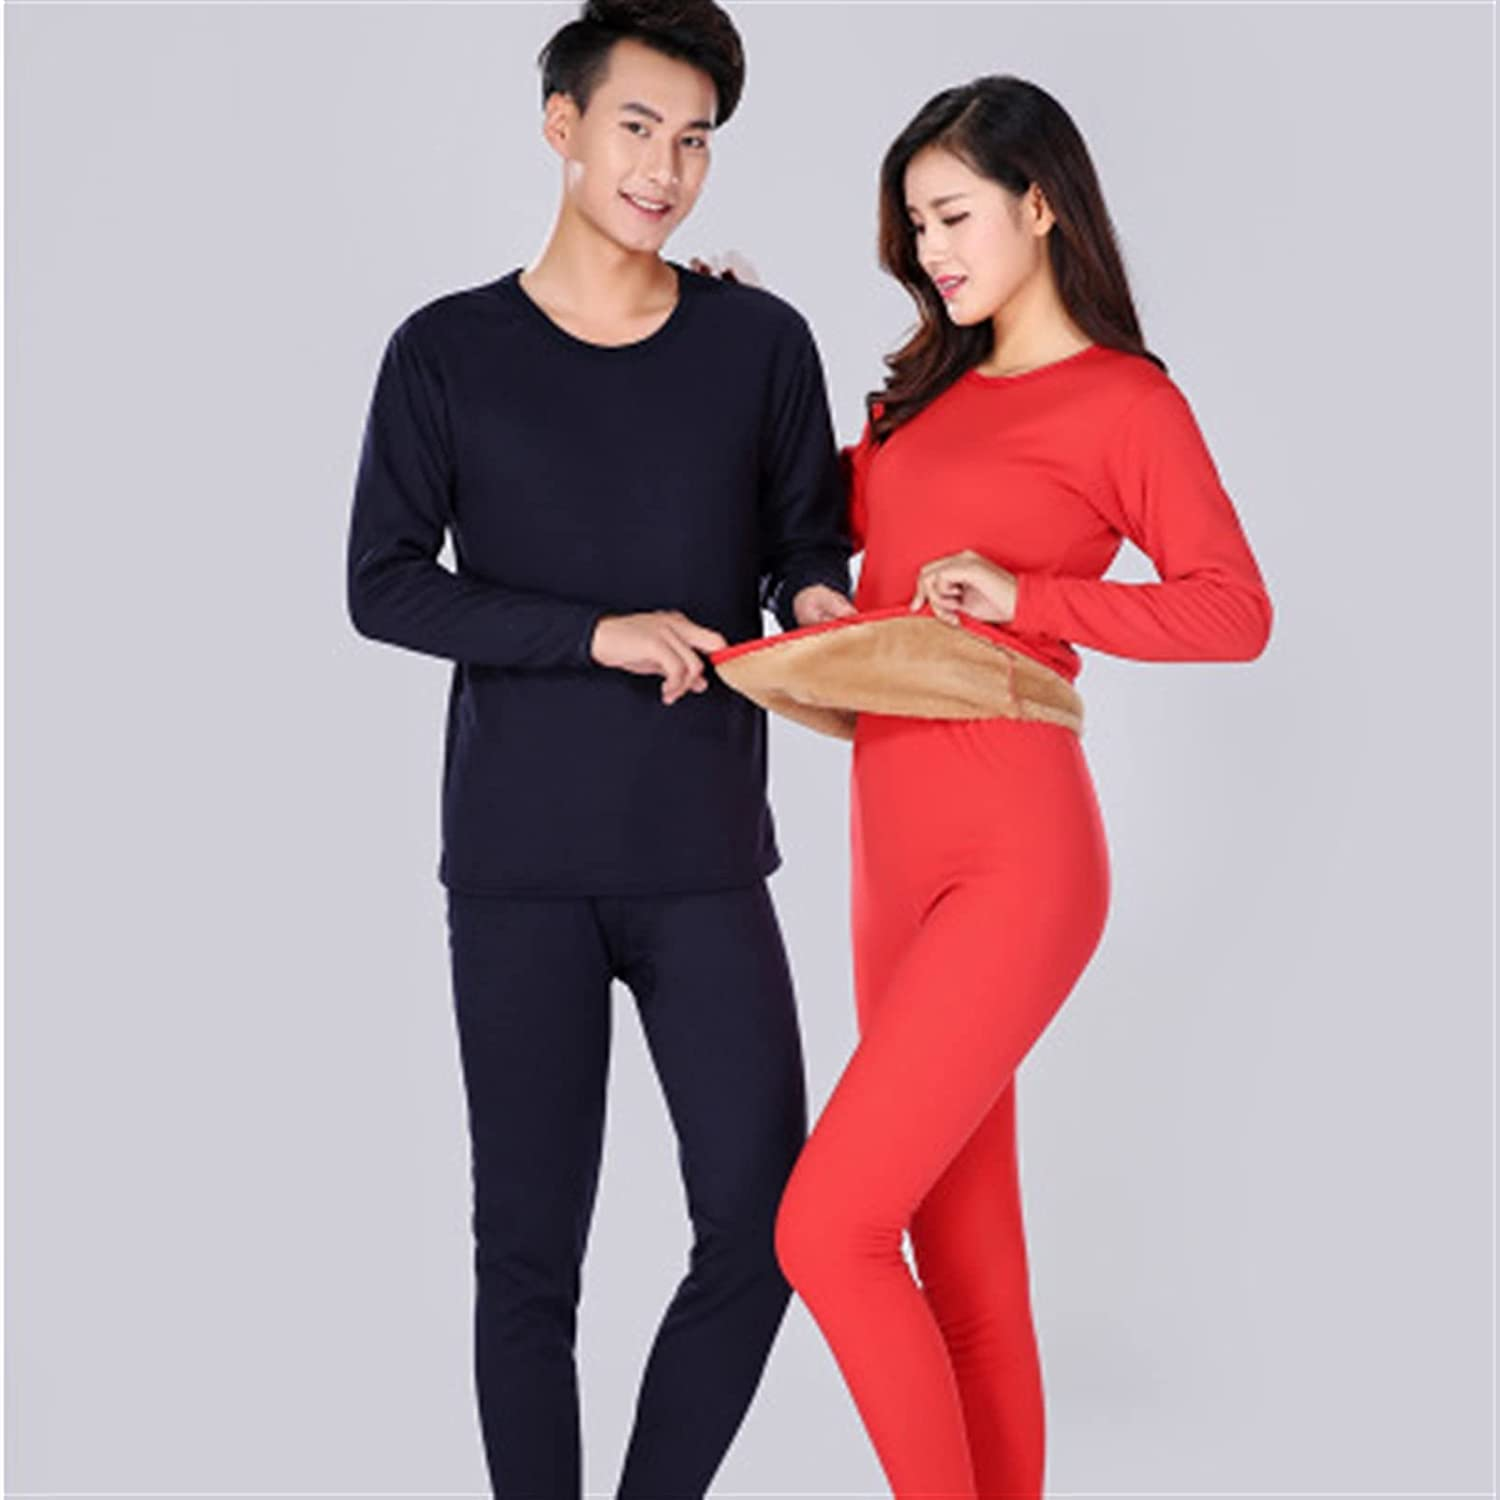 XIAOSEN Lover Thermal Underwear for Women Men Layered Clothing Pajamas (Color : Women Red, Size : XXL)